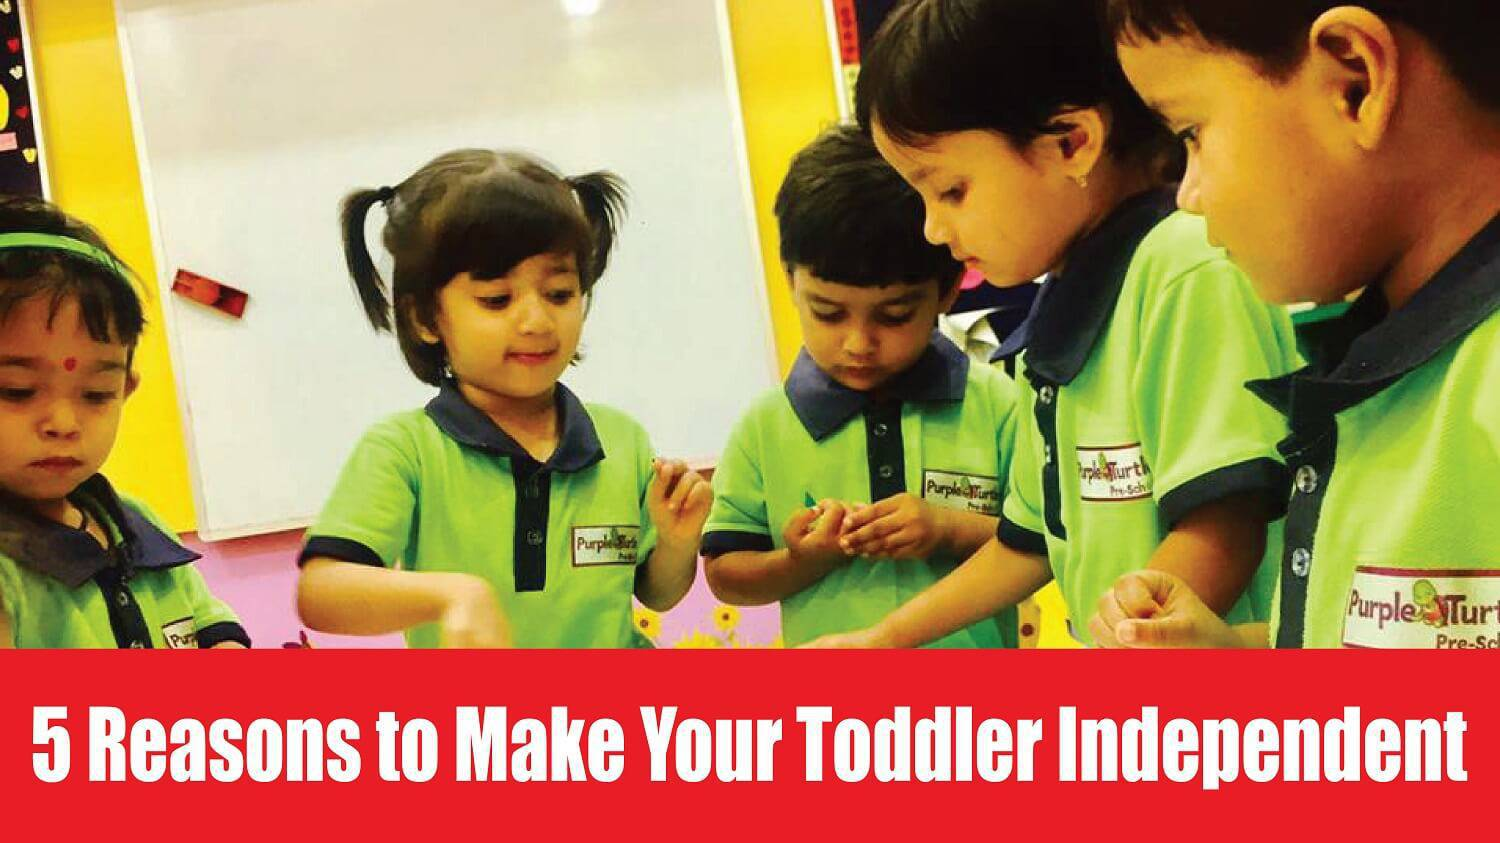 5-Reasons-to-Make-Your-Toddler-Independent